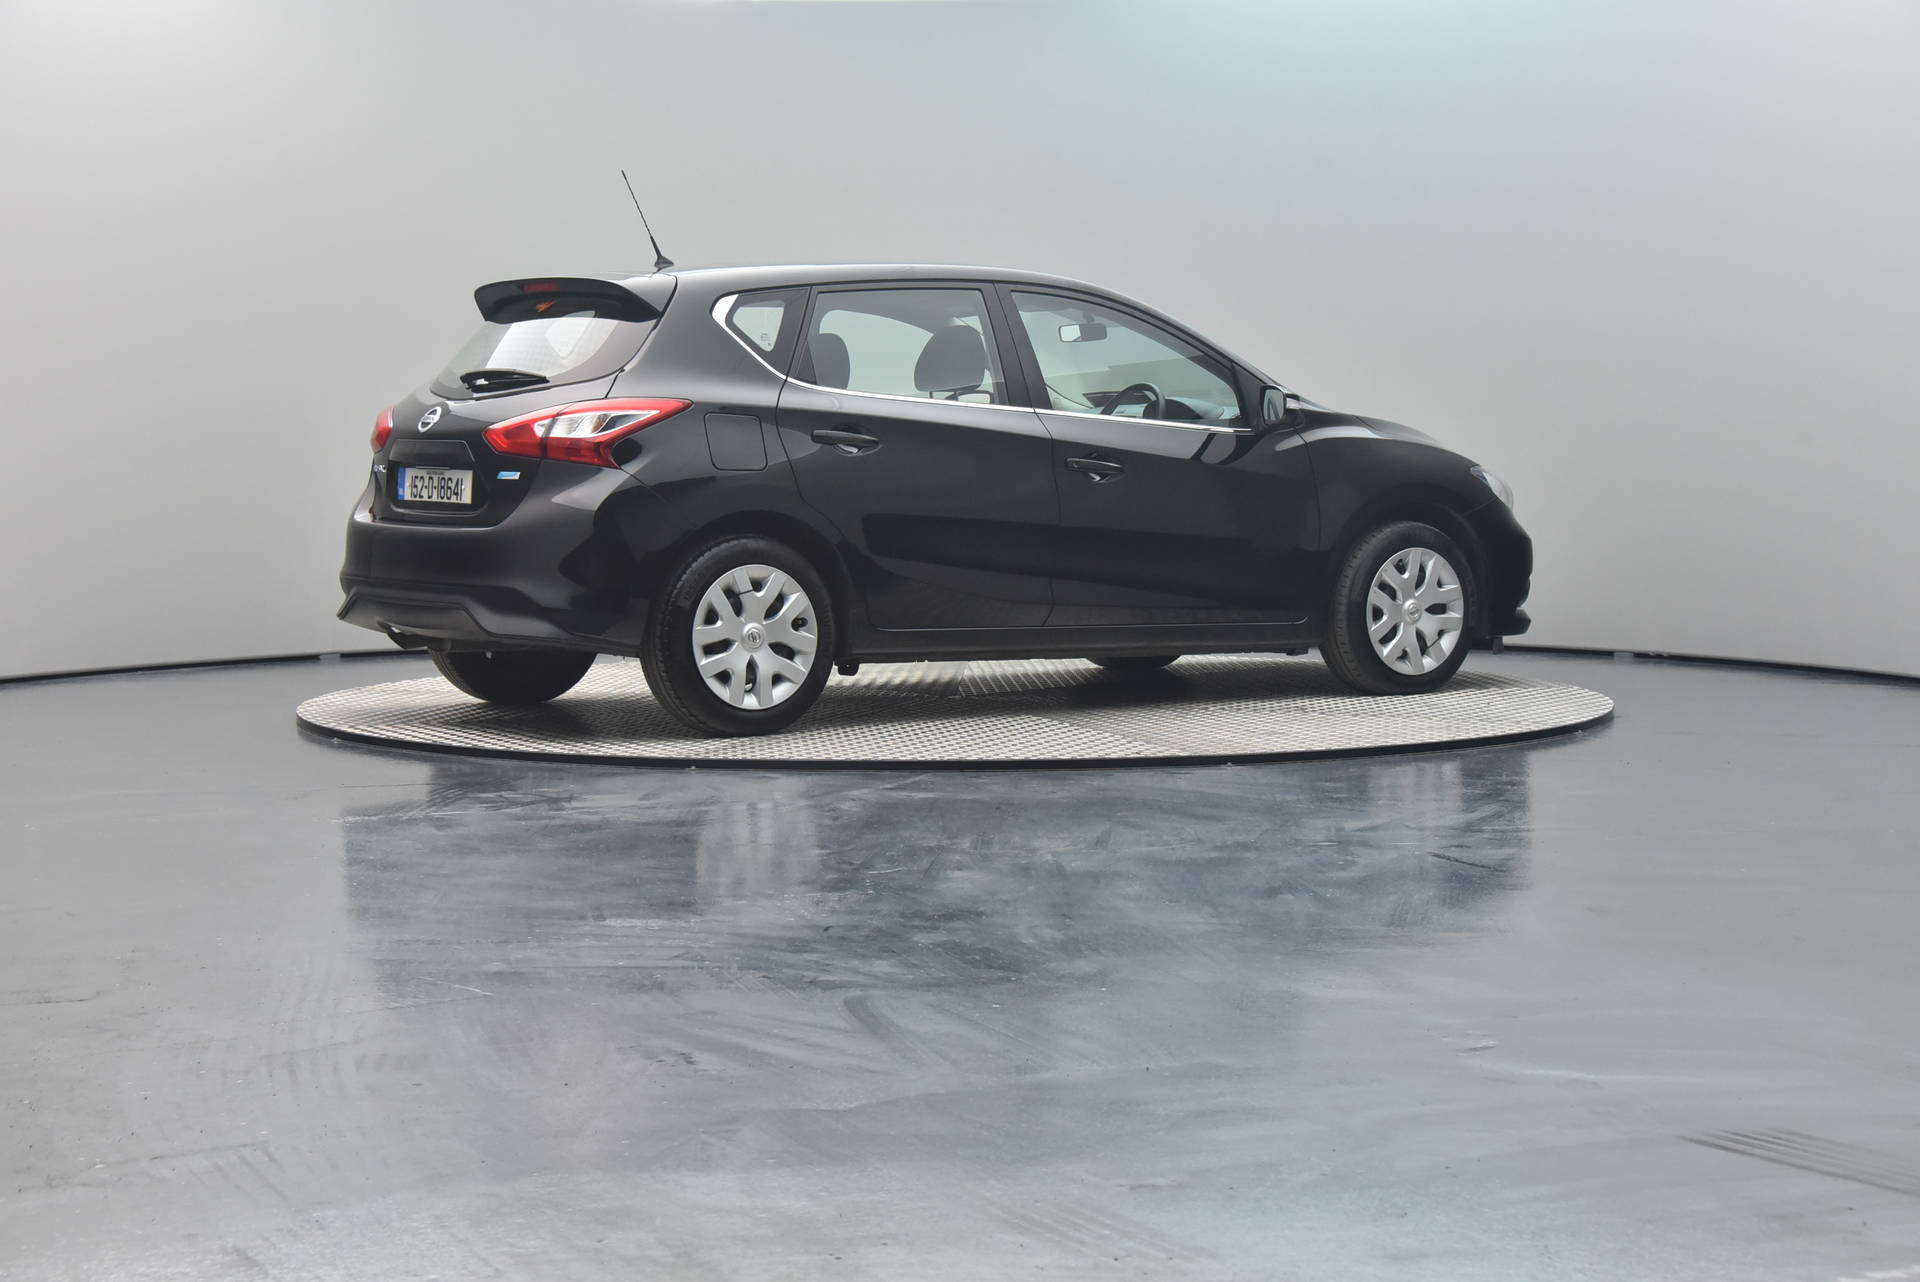 Nissan Pulsar 1.5 Dci Xe, 360-image28